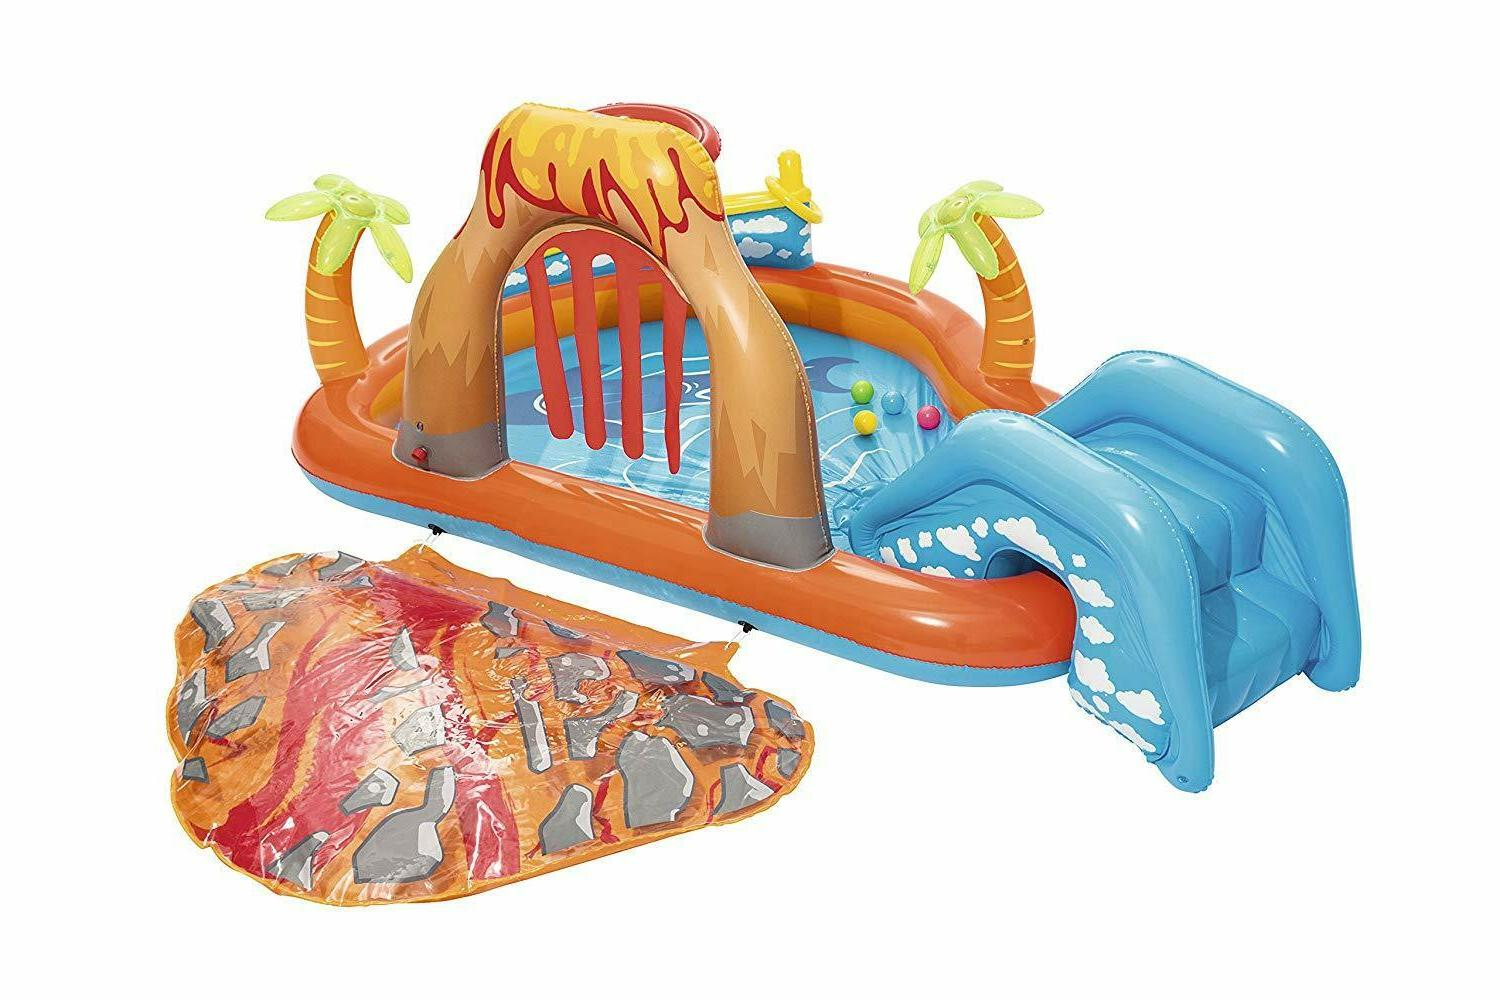 Bestway Play Center Inflatable Center 55 FEET WIDE -